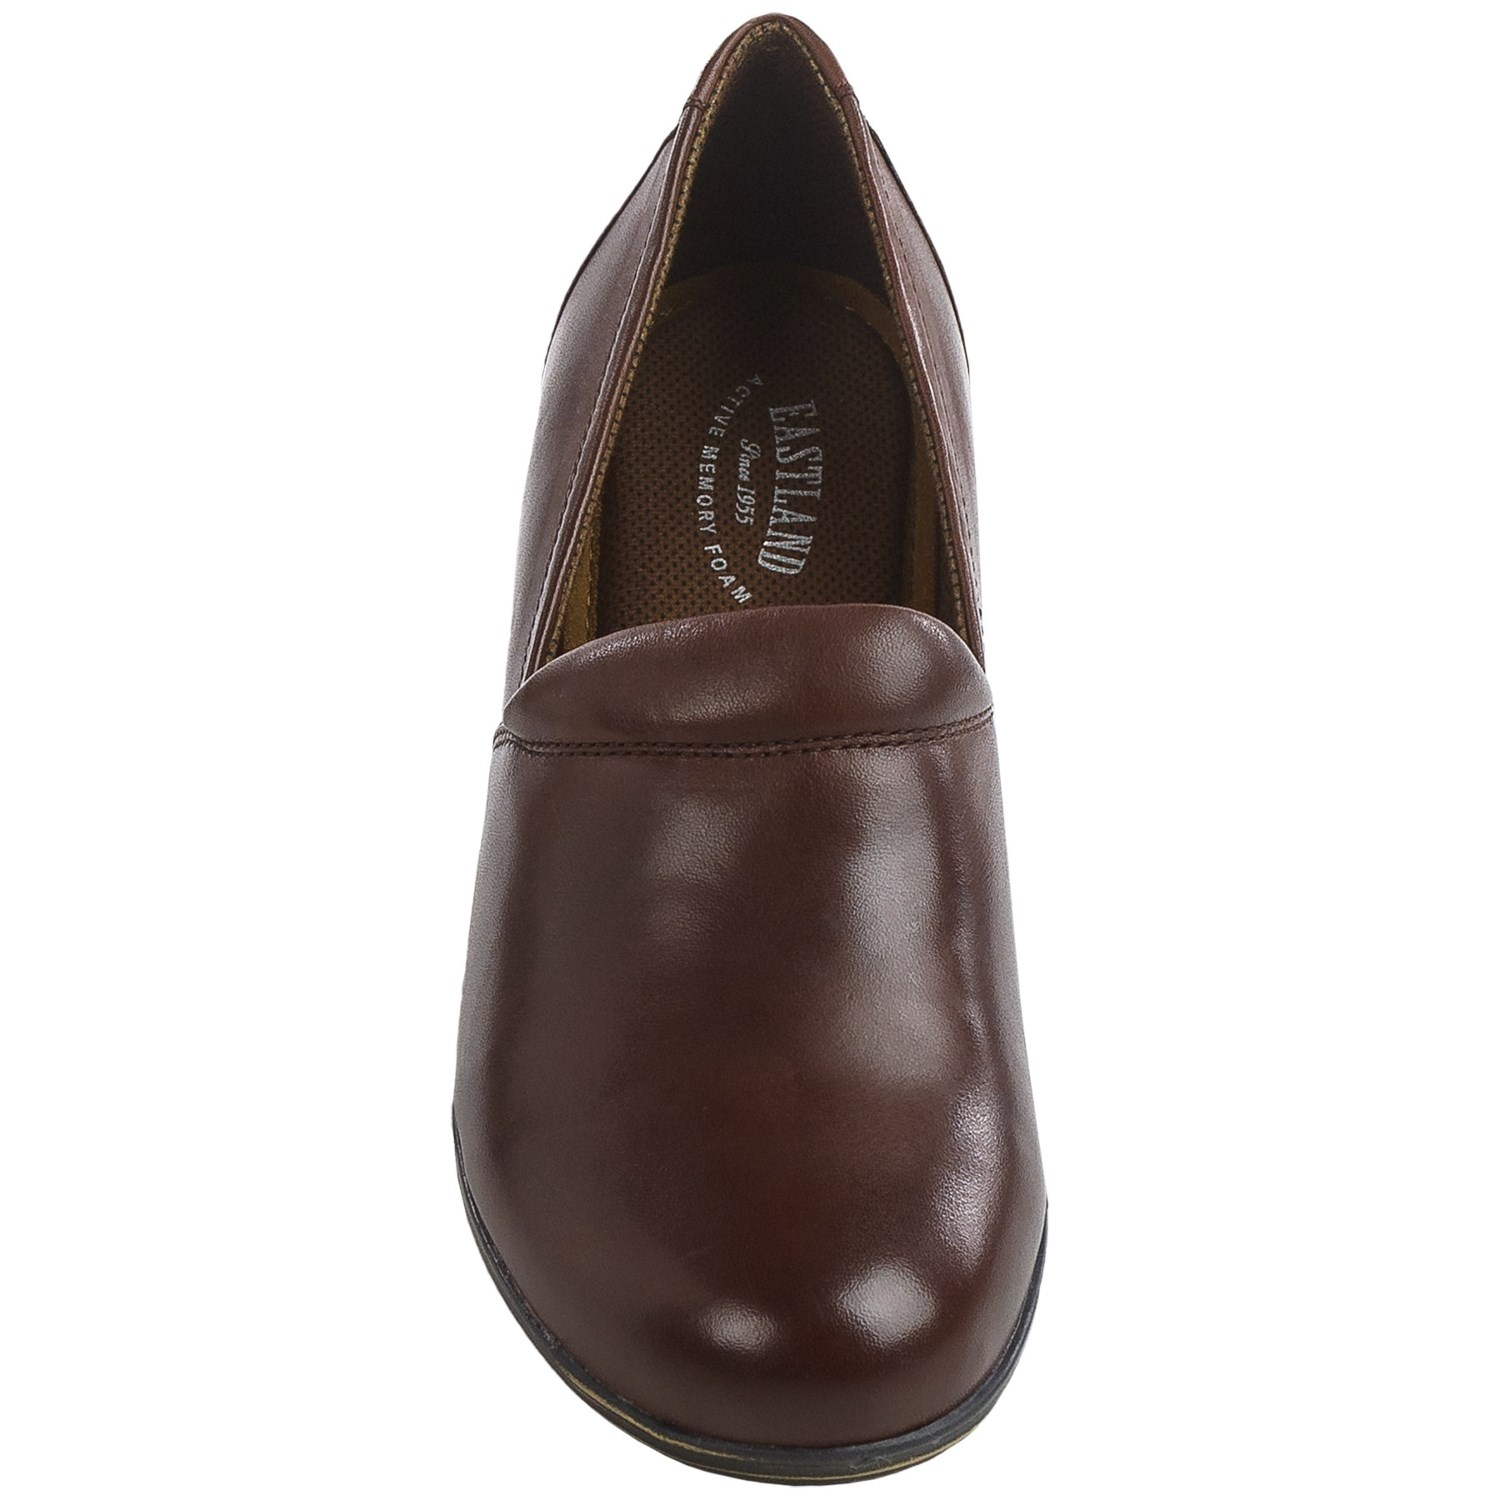 Eastland Savannah Clogs Leather Closed Back For Women